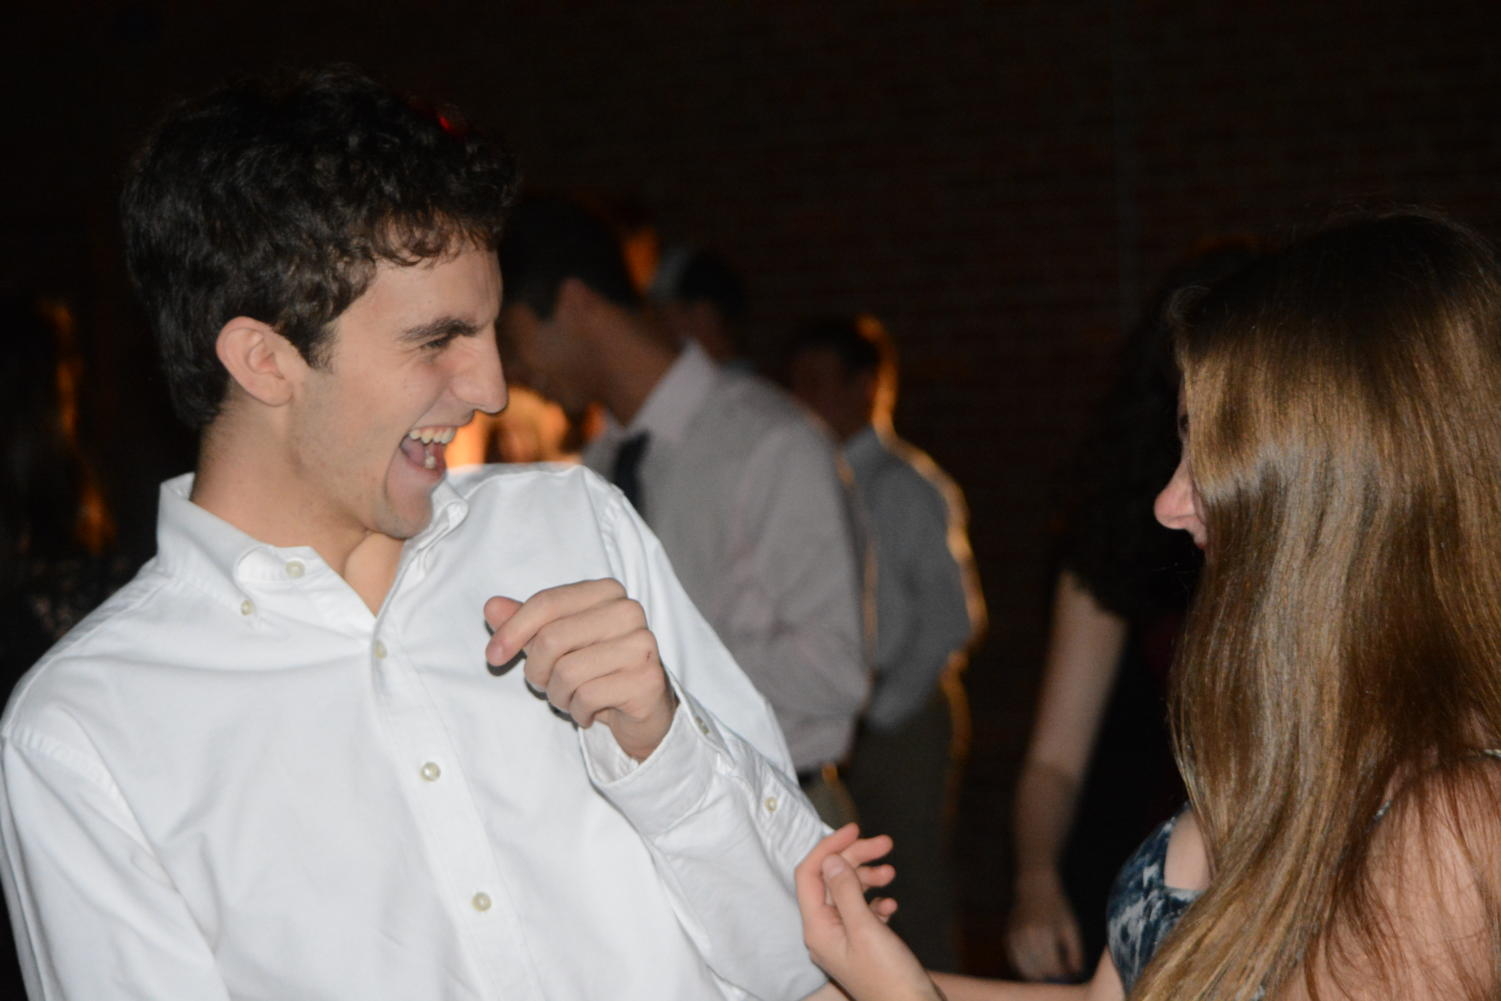 Homecoming Fun-- Senior John Ruot and Junior Carolyn Ives enjoy the festivities at the homecoming dance. The even took place on Saturday, September 29.